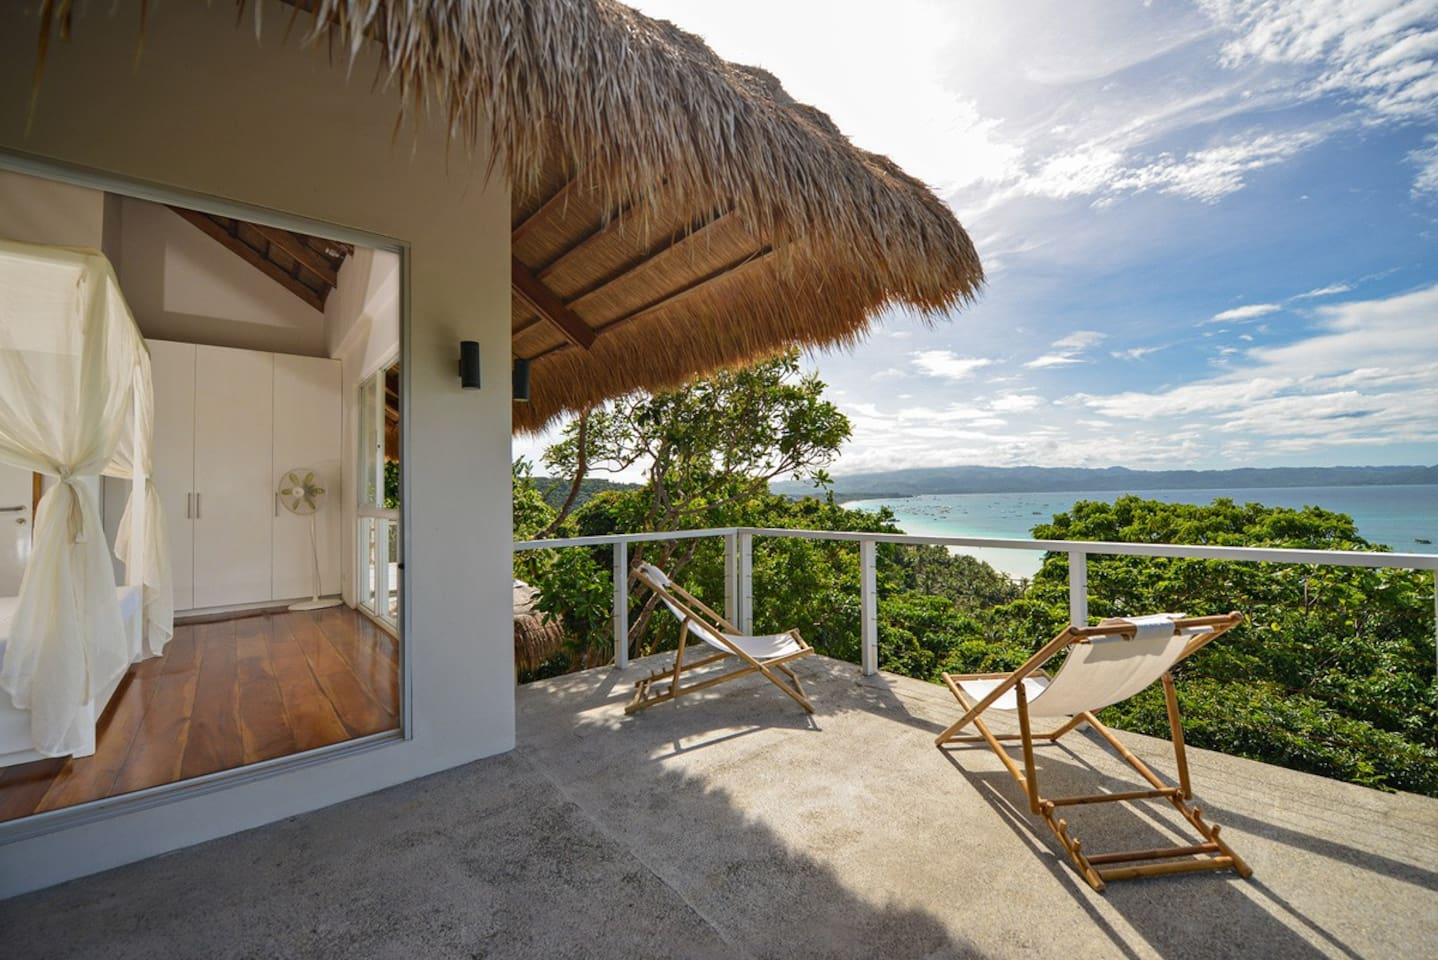 This villa has the fantastic view over the famous Boracay white beach from every room